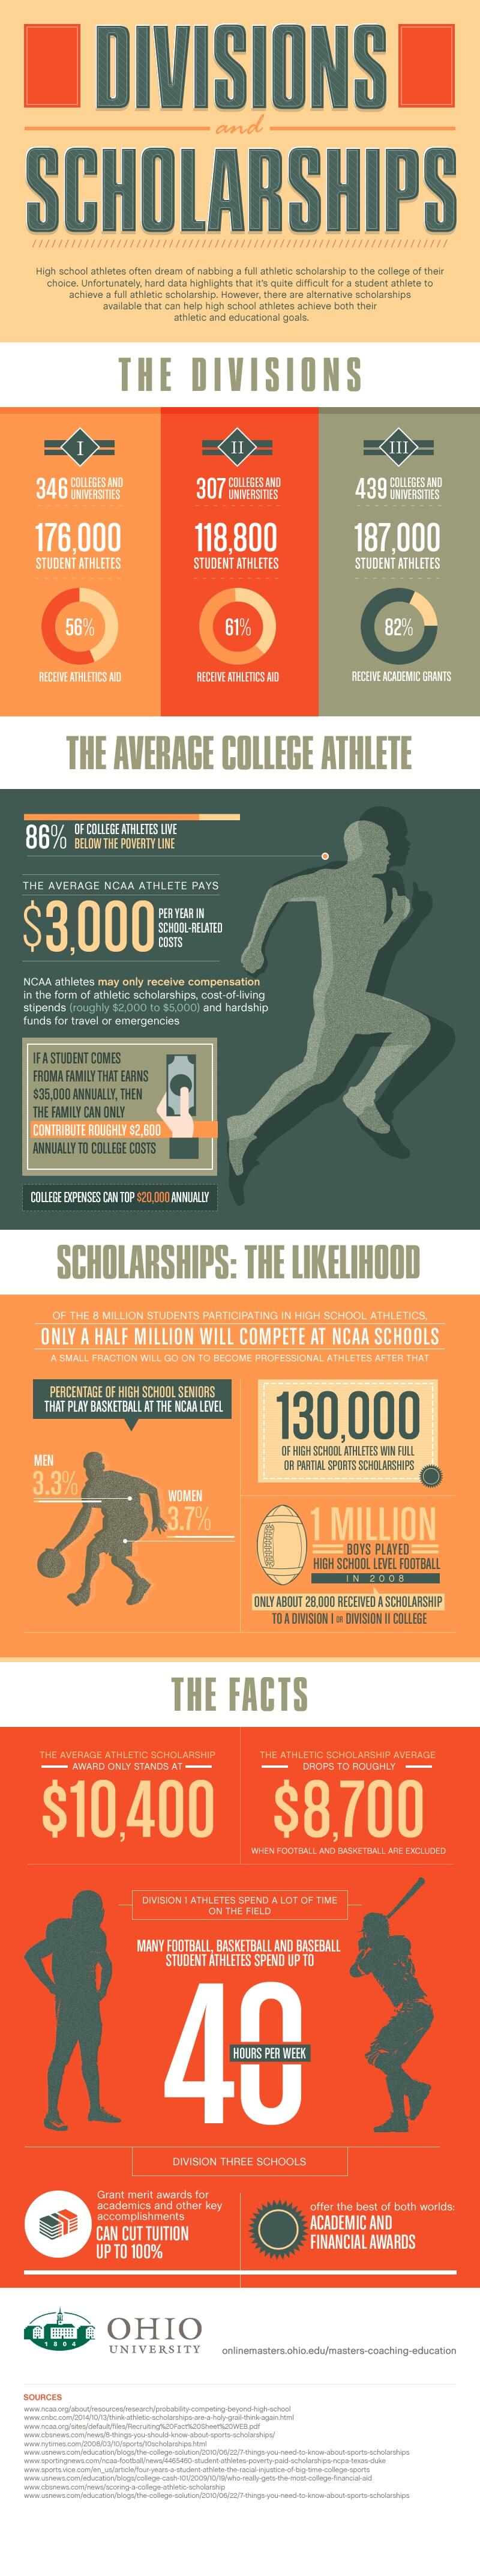 Finding Alternative Scholarships for Student Athletes infographic